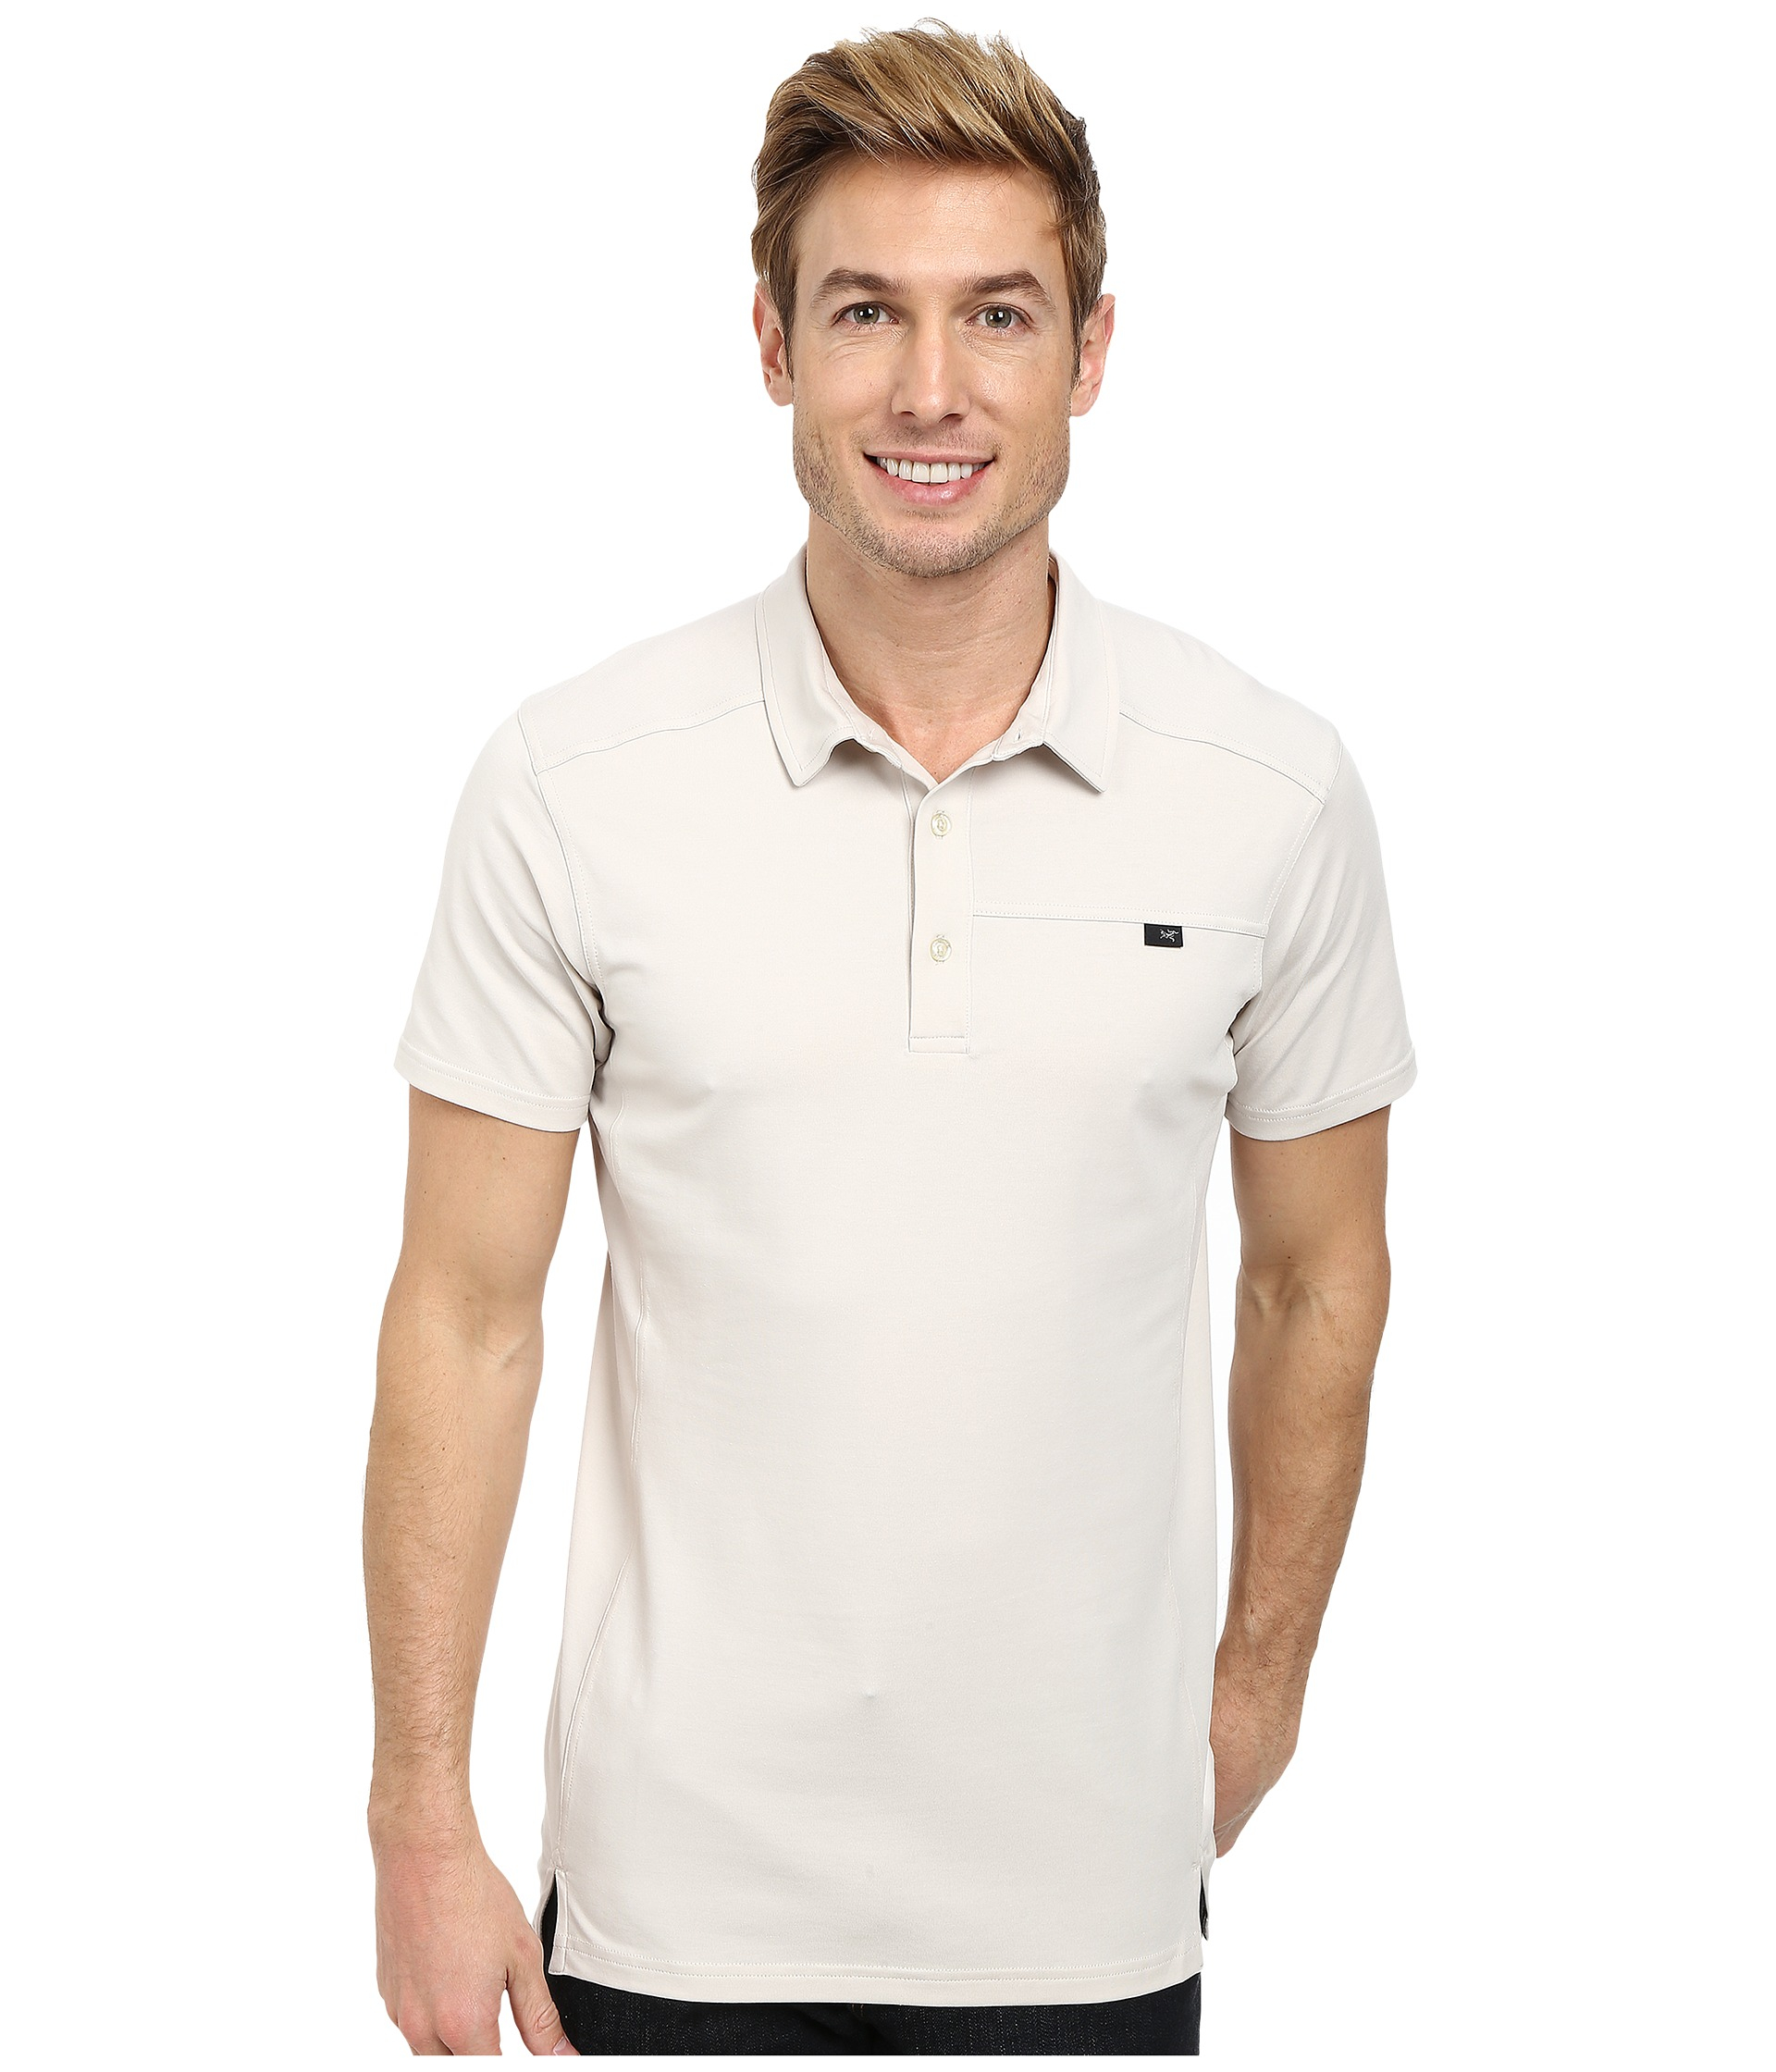 8e57d065a9 Arc'teryx Captive Polo S/S in Natural for Men - Lyst